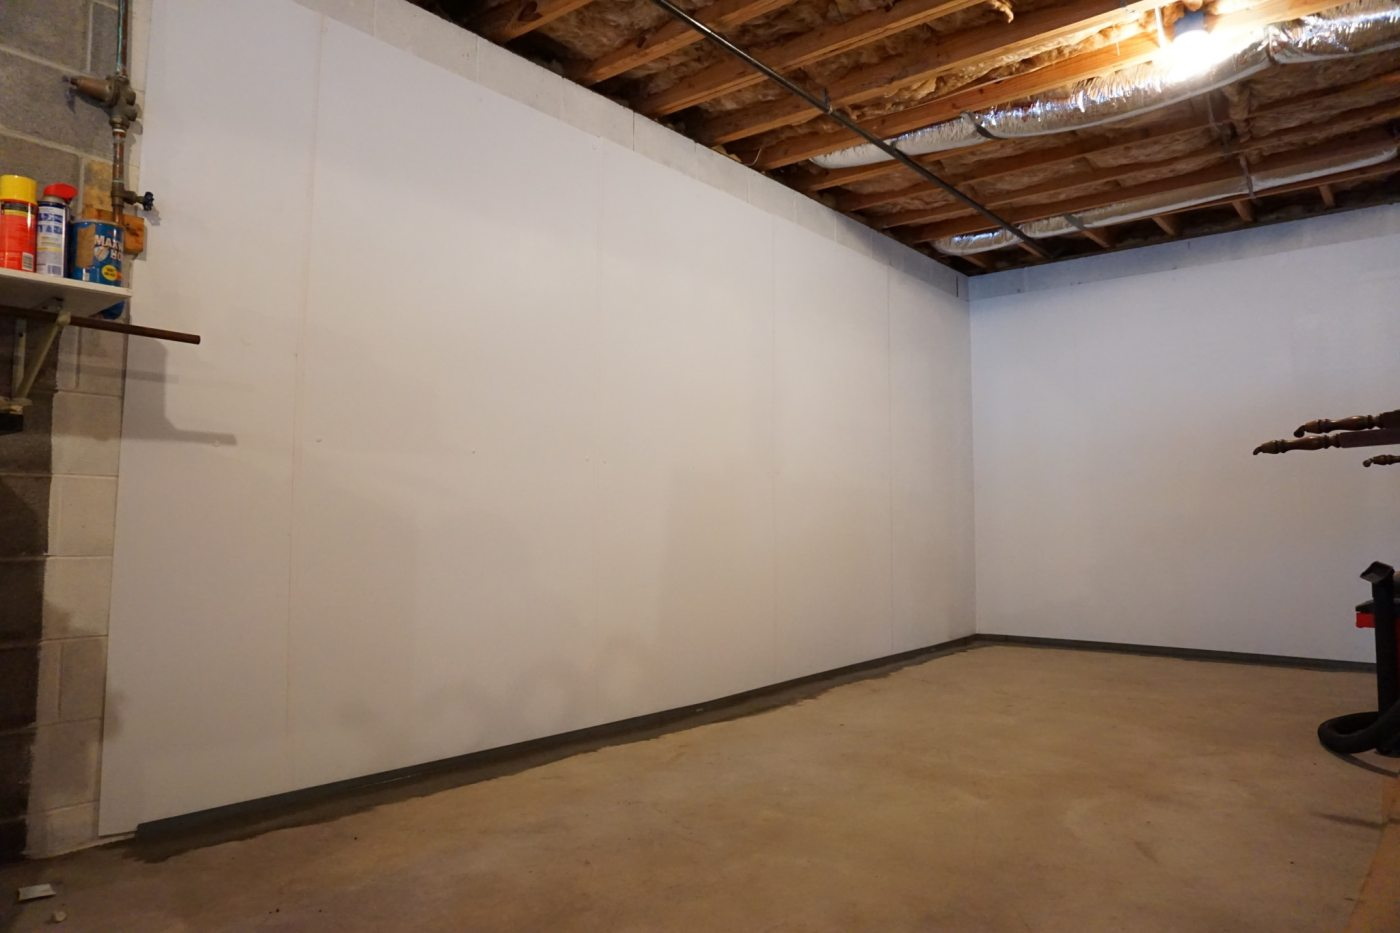 A waterproofed basement by AFS, A Bayless Company, the leading Foundation & Waterproofing Company in the Southeast.